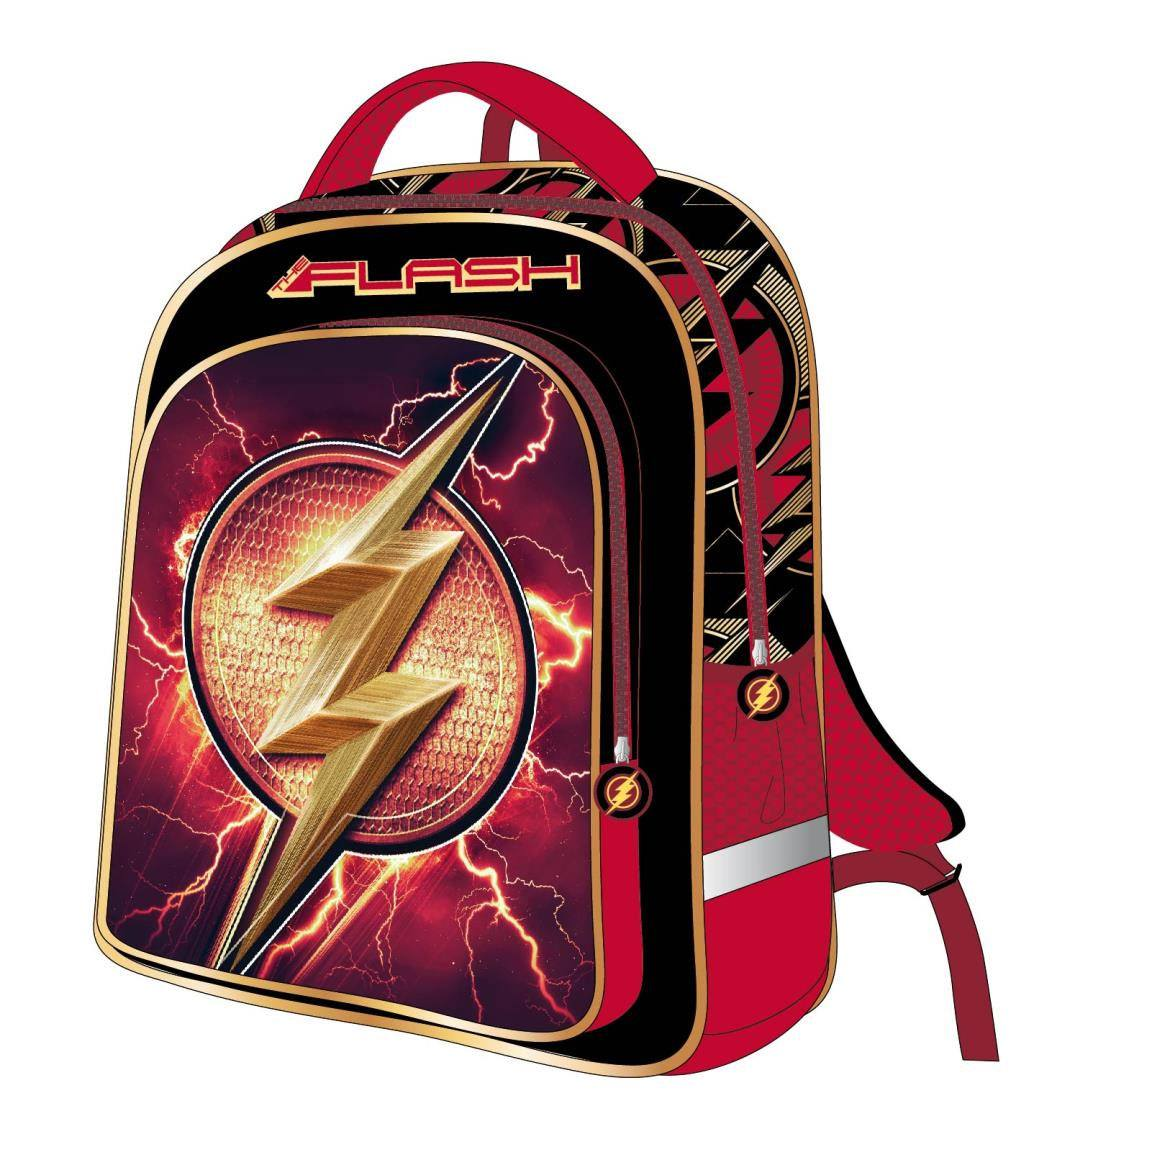 Justice League 3D Backpack The Flash 31 x 41 x 13 cm